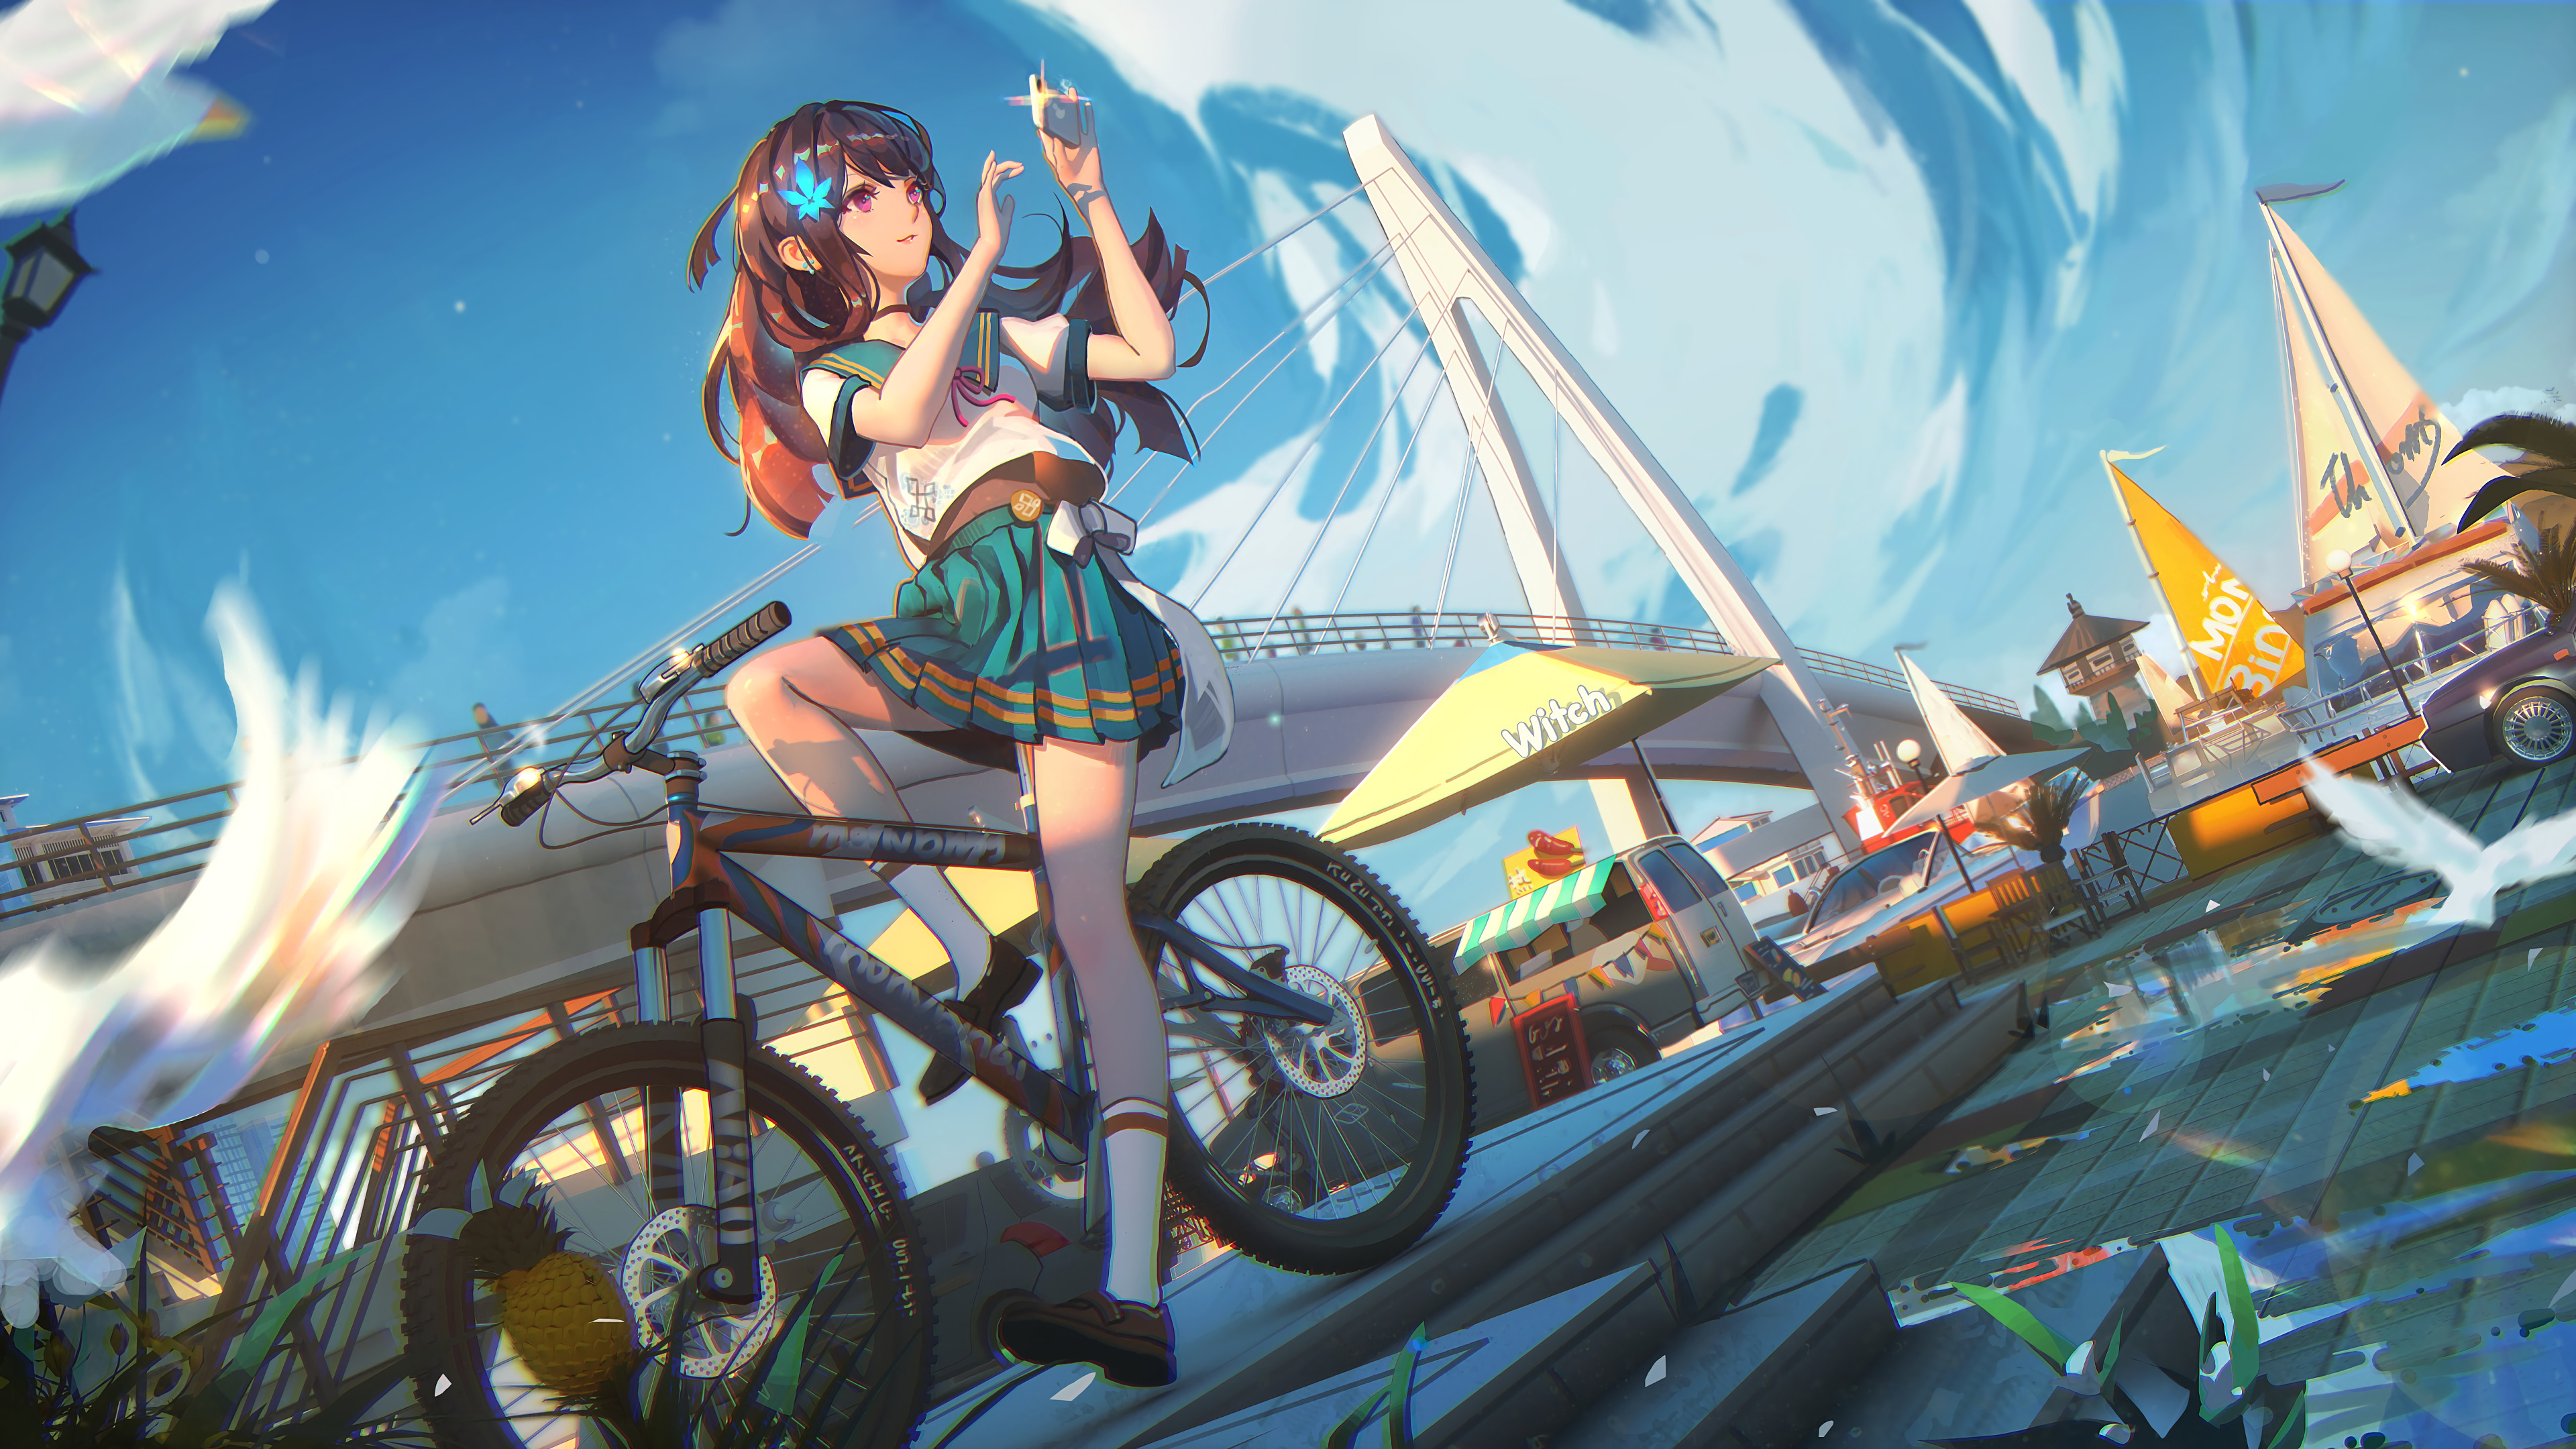 Anime Student Girl On A Bicycle Wallpaper 4k Ultra Hd Id3722